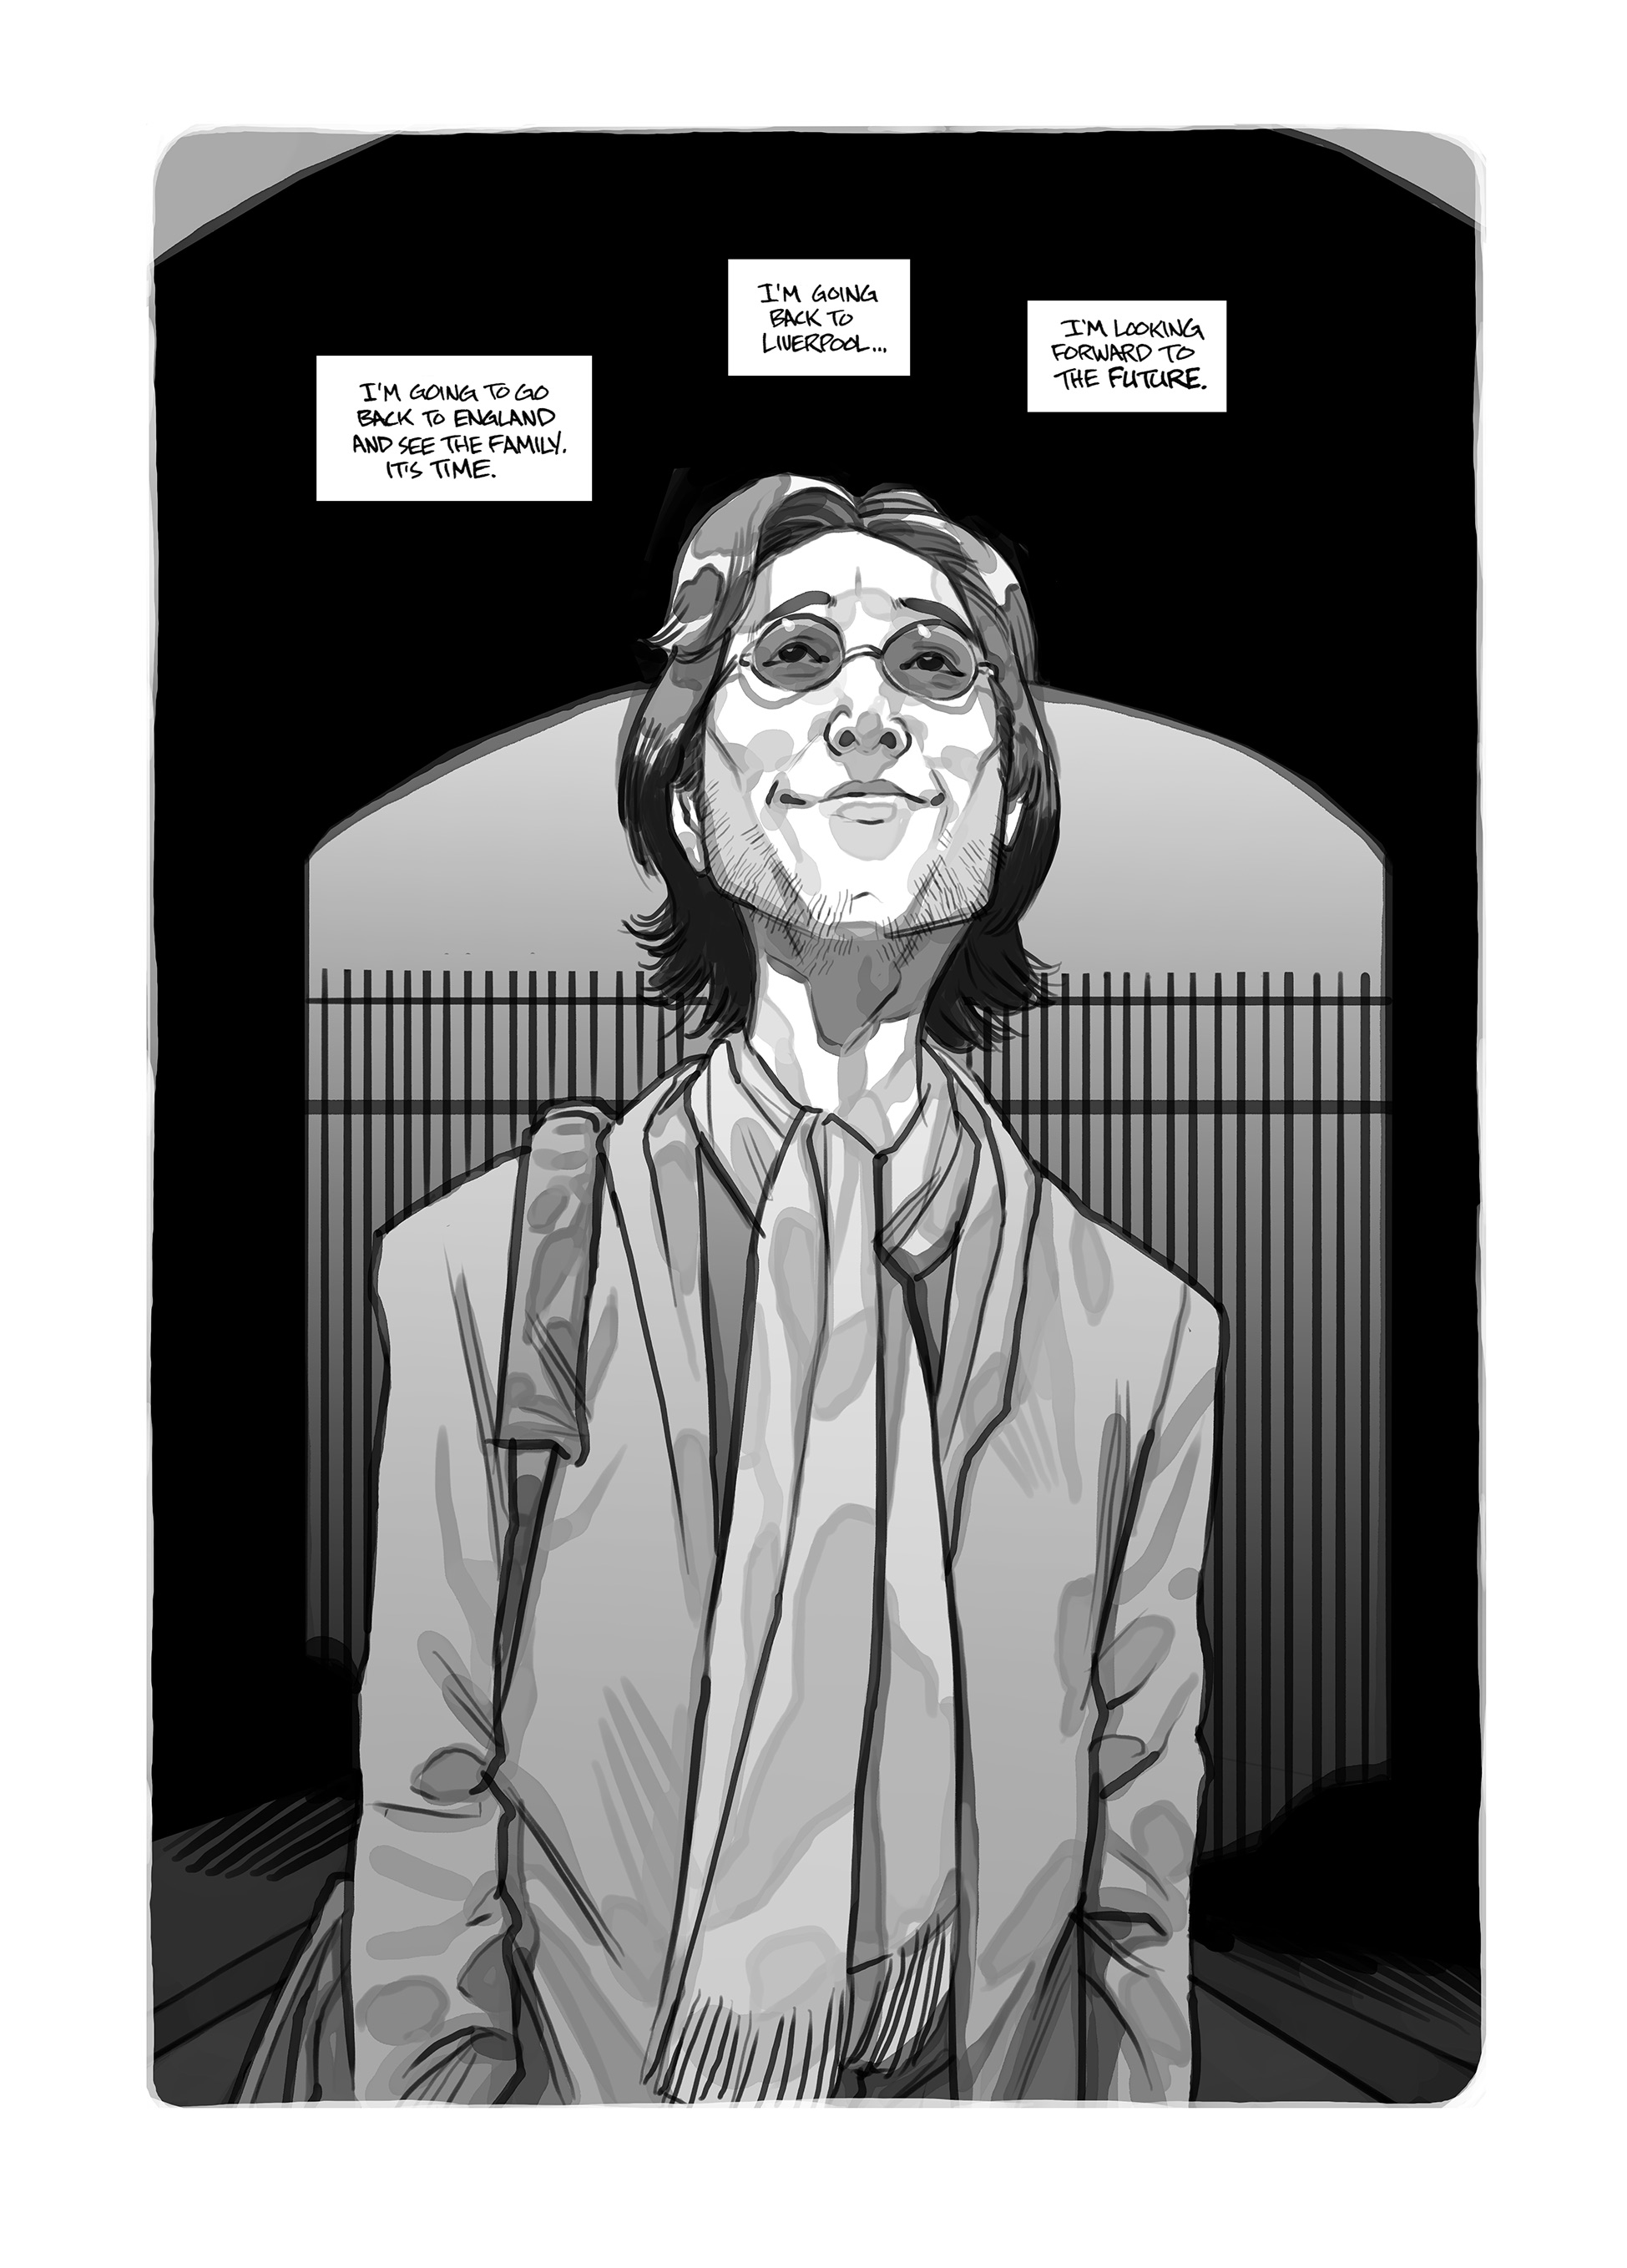 121 Graphic novel recounting John Lennons New York years previewed in new trailer    watch